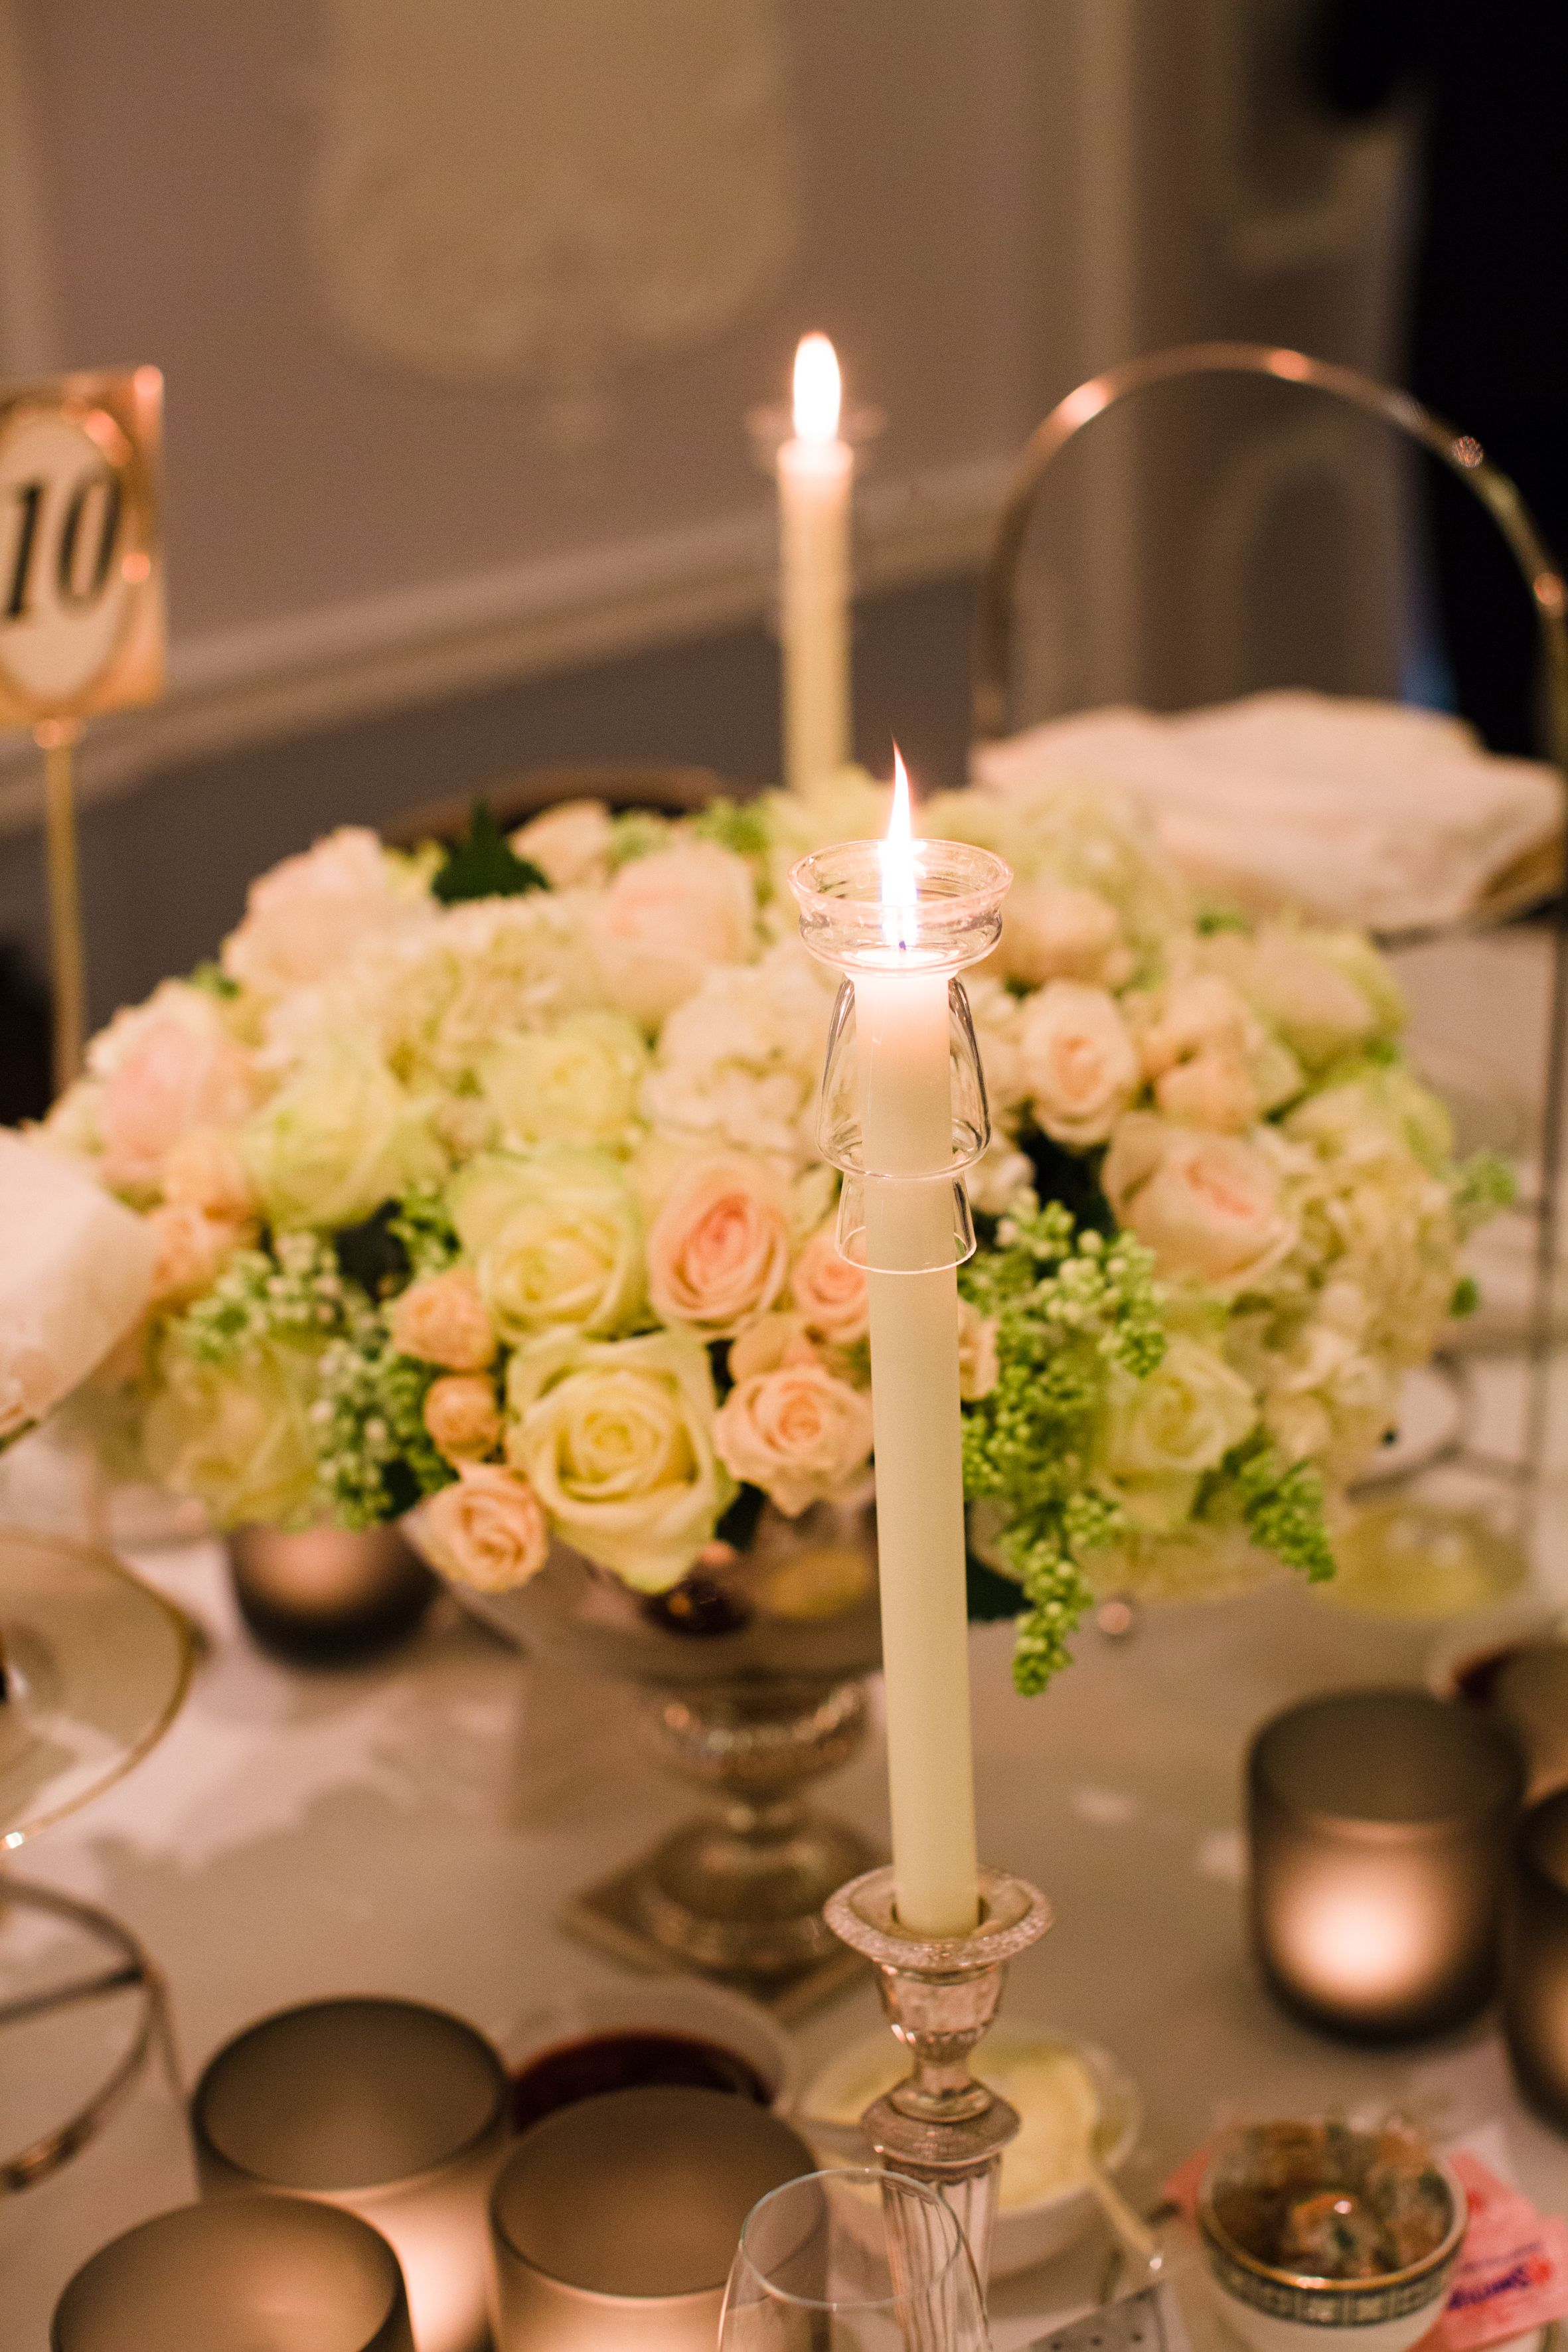 Brides Show Classic Pastel Seasonal Flowers For A Spring Wedding